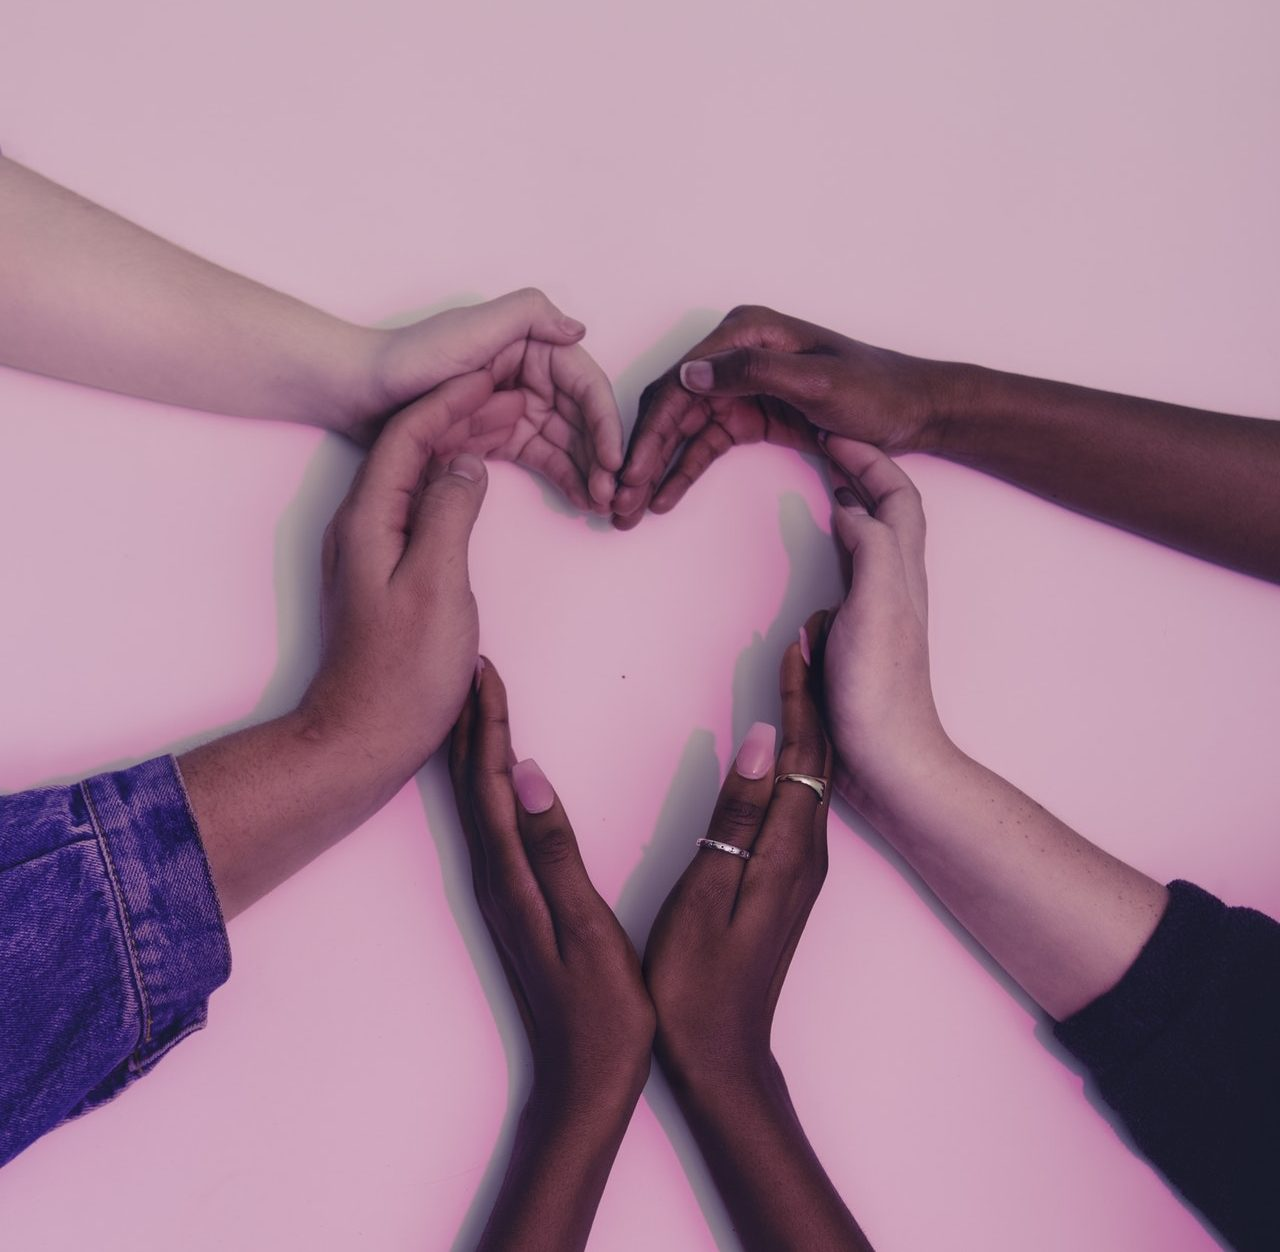 People are using the #PoCInLove Twitter hashtag to celebrate their diverse relationships, so grab a tissue